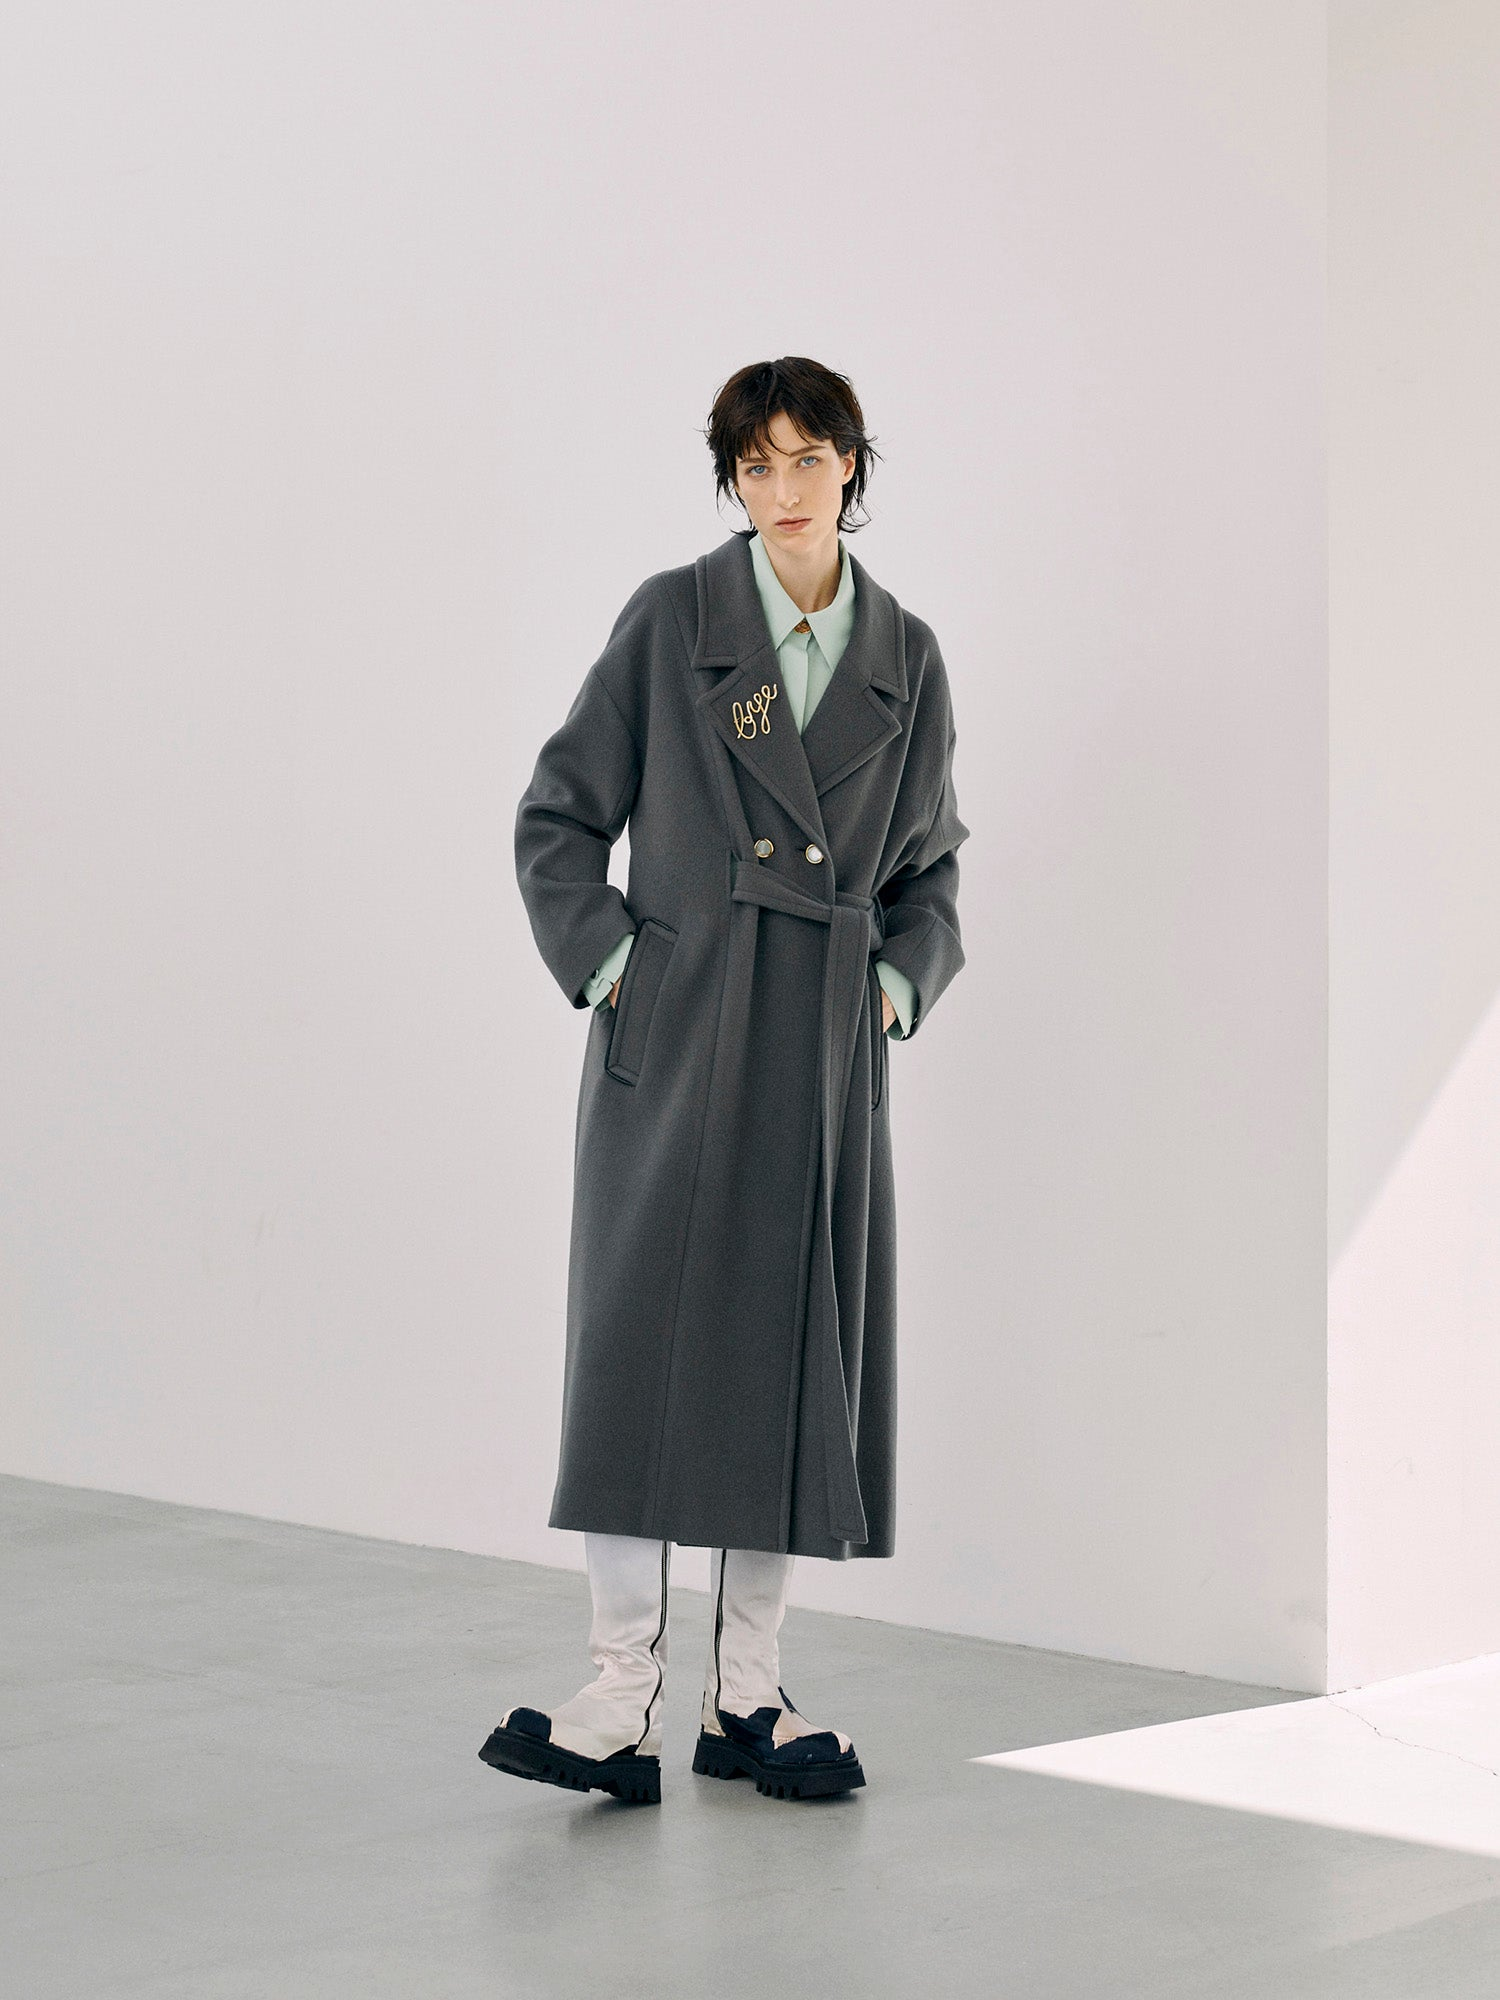 MURRAL autumn / winter 2020 collection